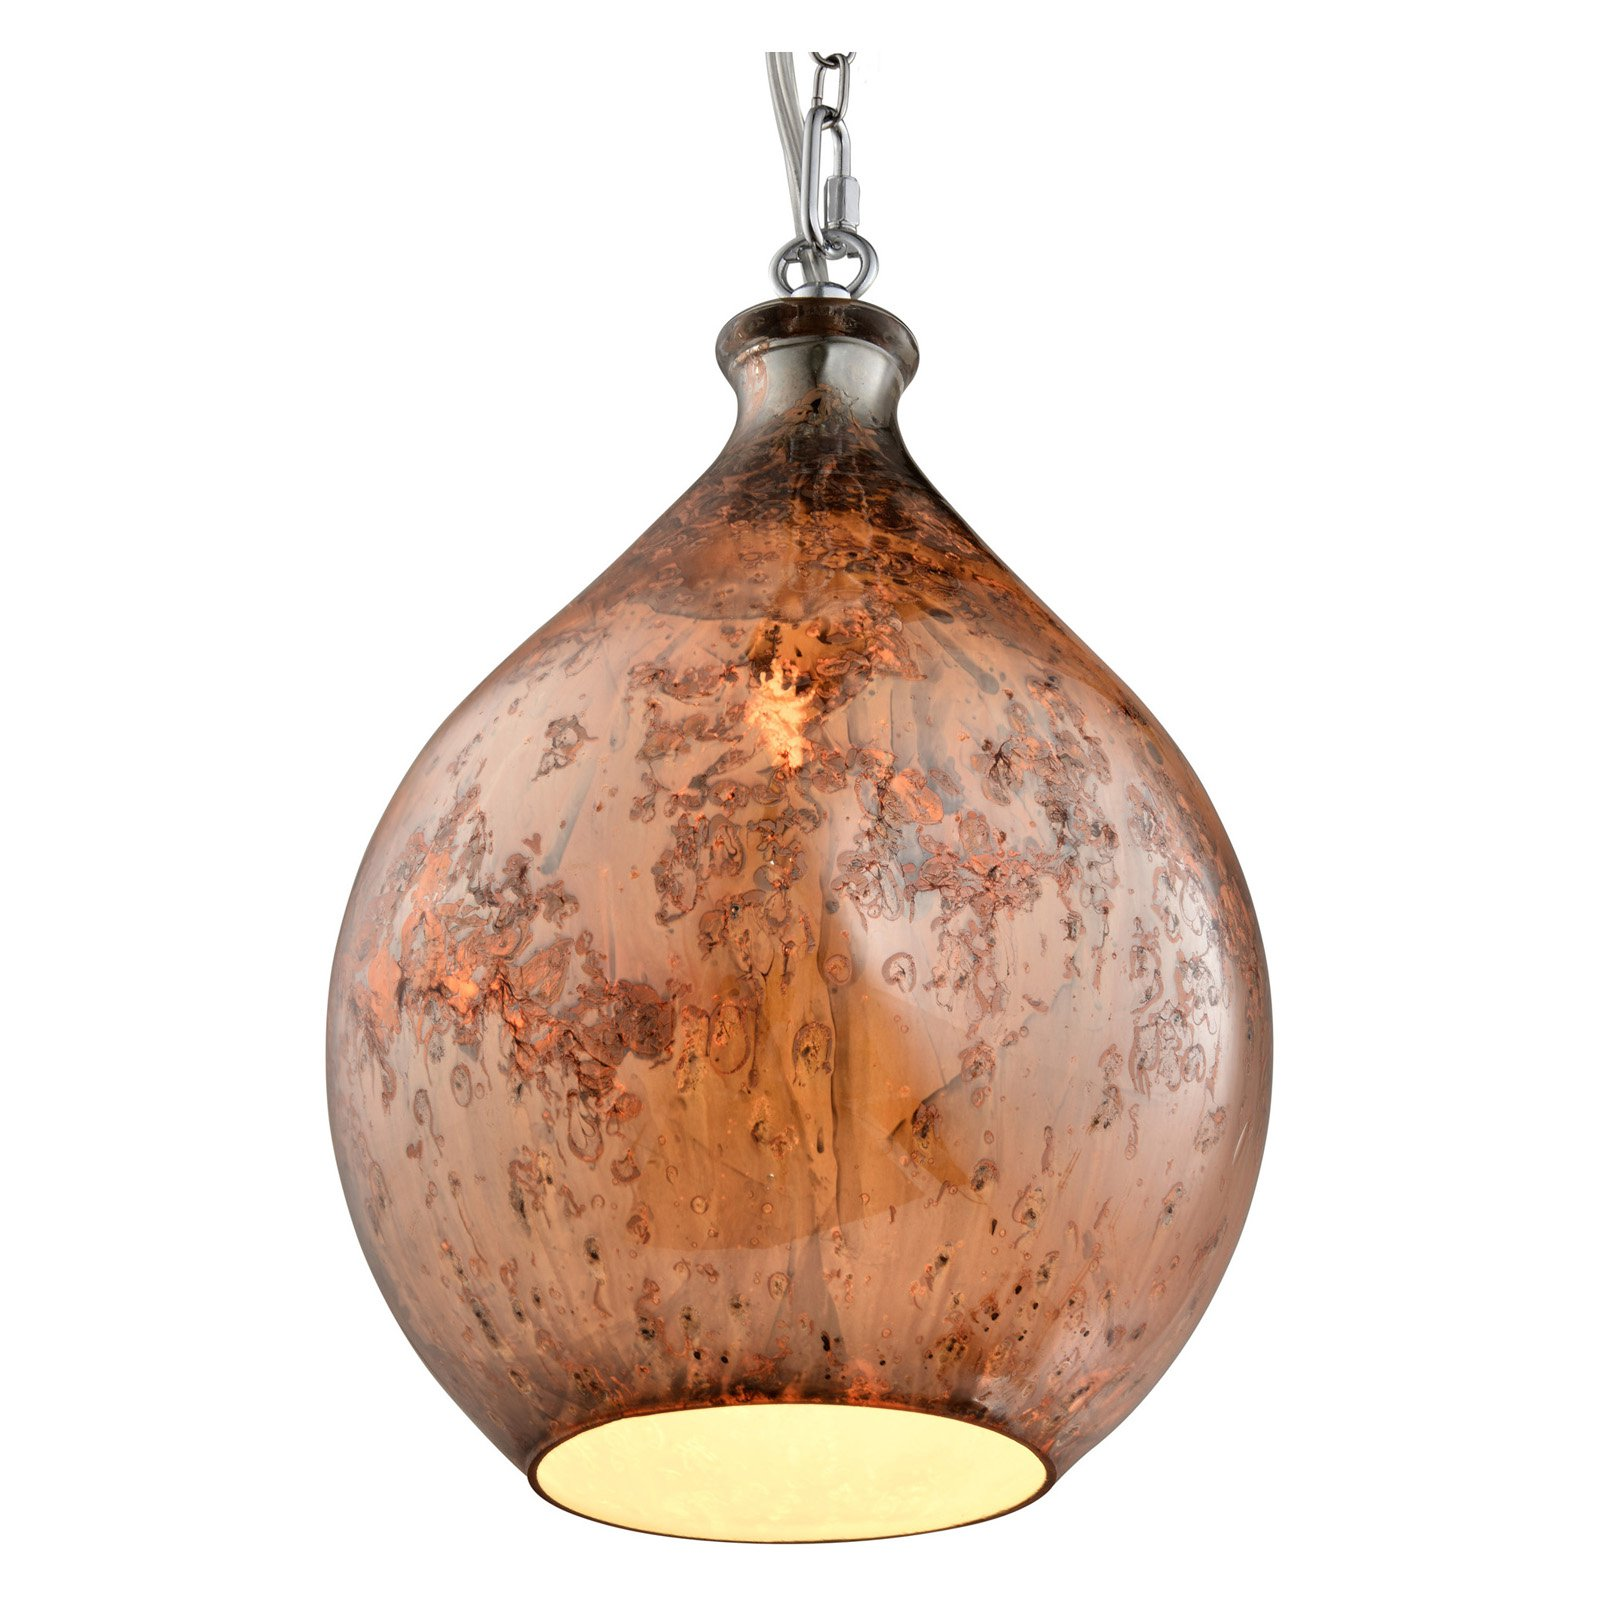 Varaluz French Quarter 274M01 Pendant Light